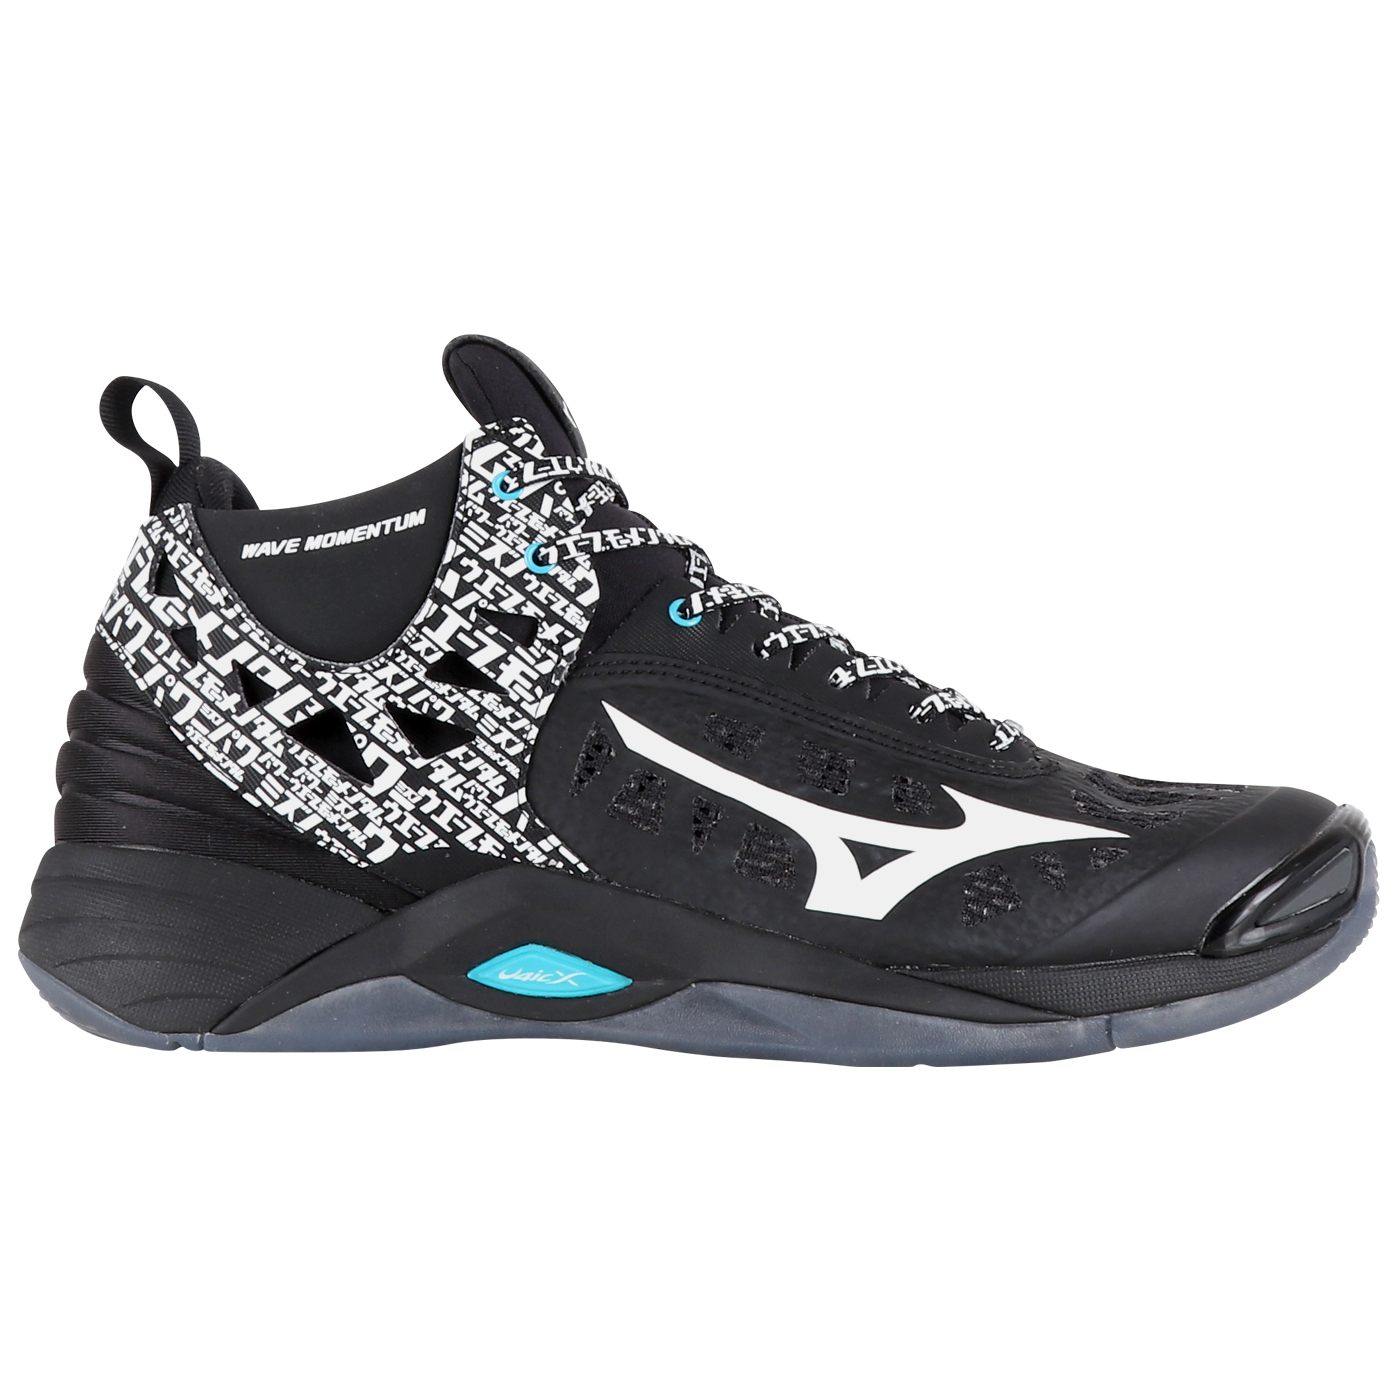 WAVE MOMENTUM MID - BLACK/WHITE/BLUE ATOLL